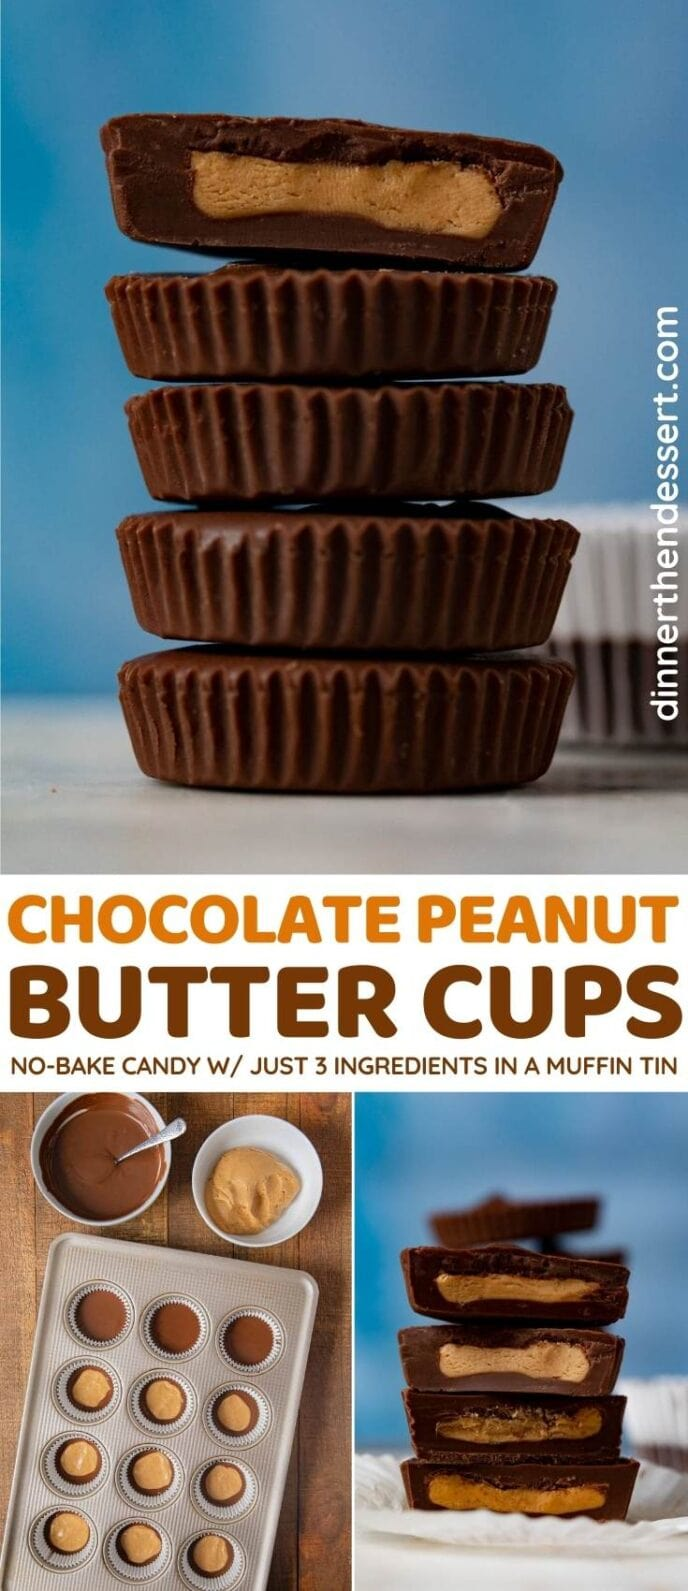 Chocolate Peanut Butter Cups collage